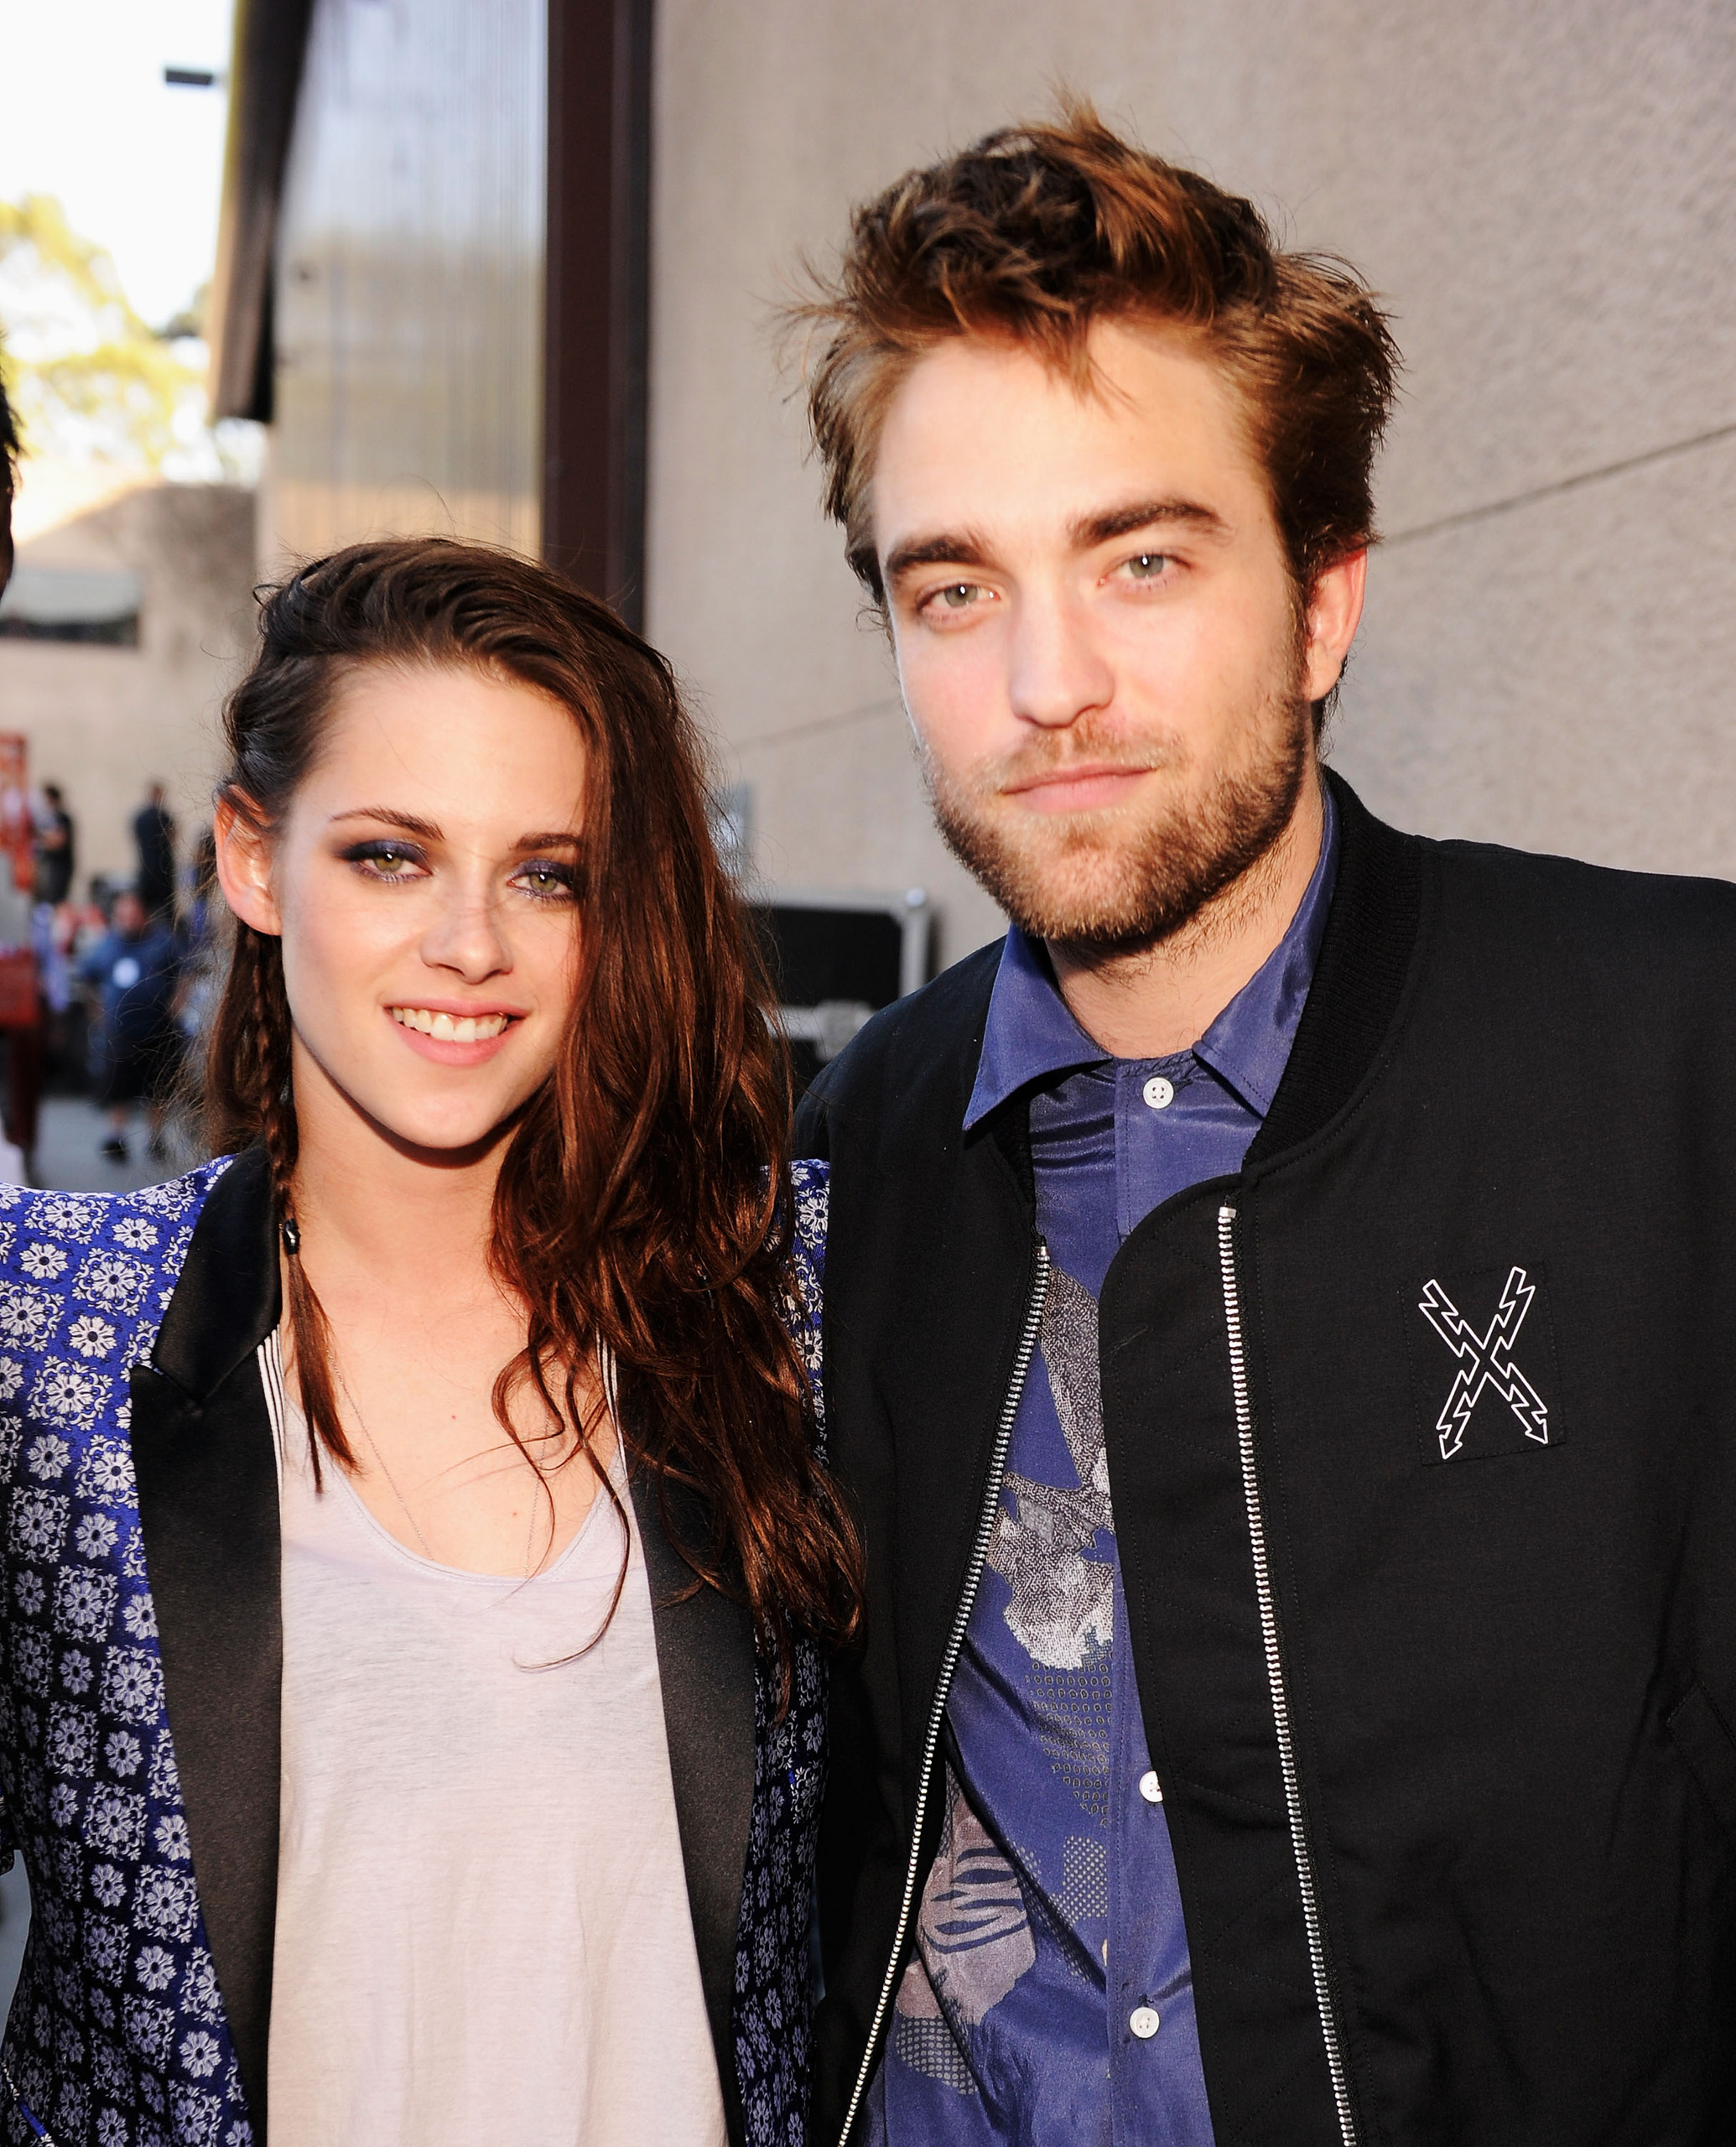 Download this Tca Robert Pattinson And Kristen Stewart picture